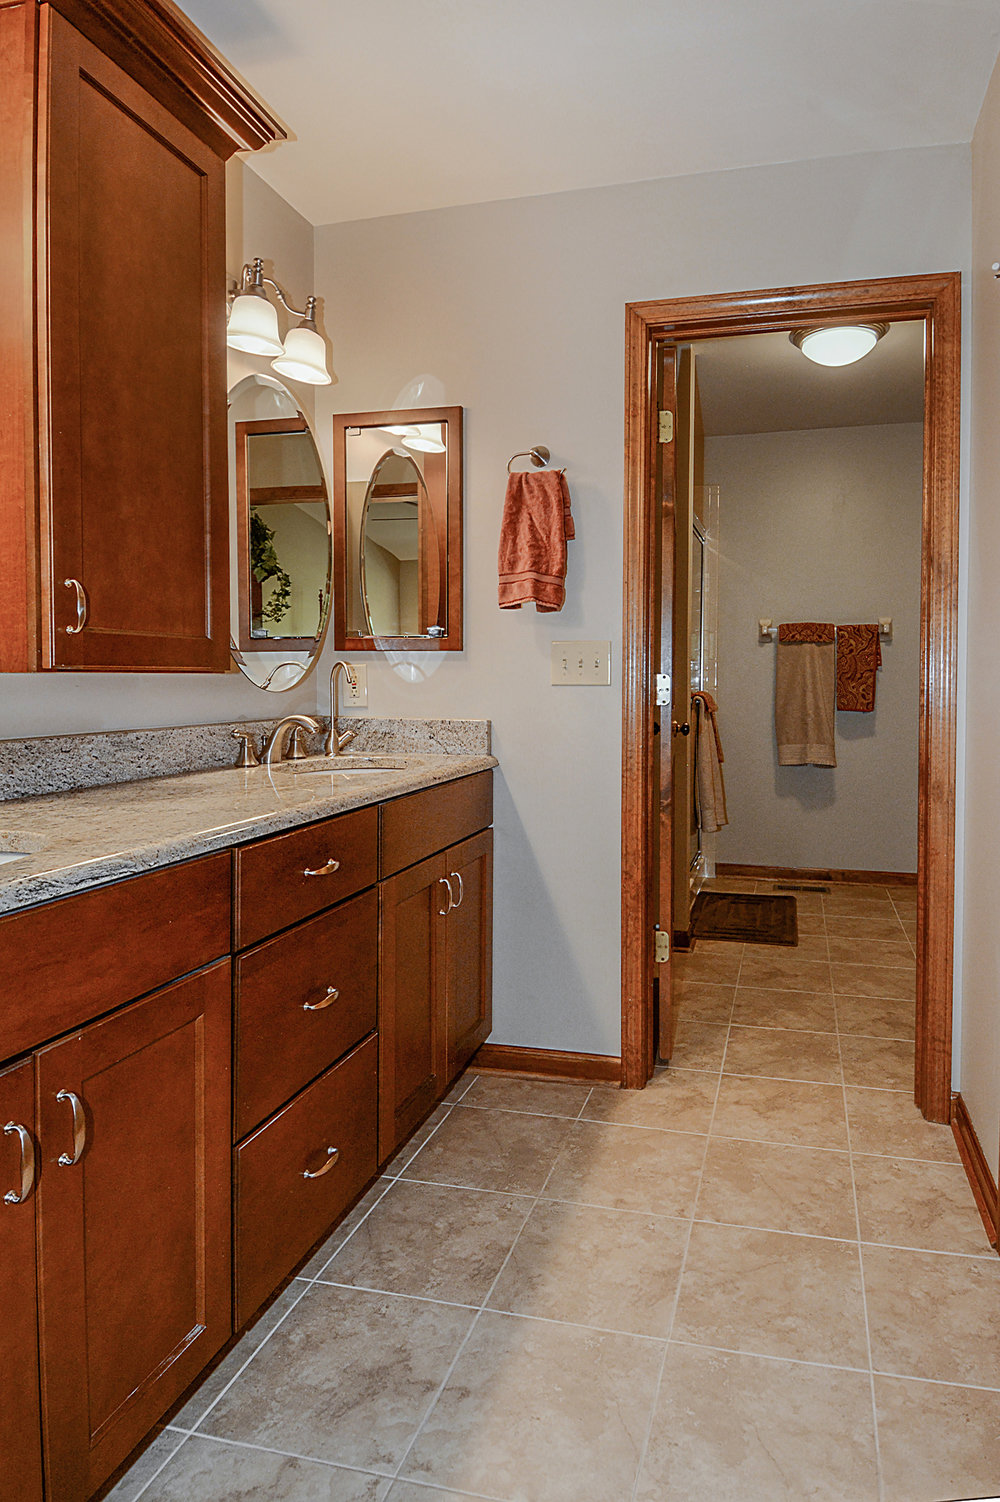 New Tile Floors in this Naperville IL End Unit Townhome Bathroom Remodel. New Trim & Double Bowl Vanity Also. Naperville IL. Townhome Remodeling & Updating.